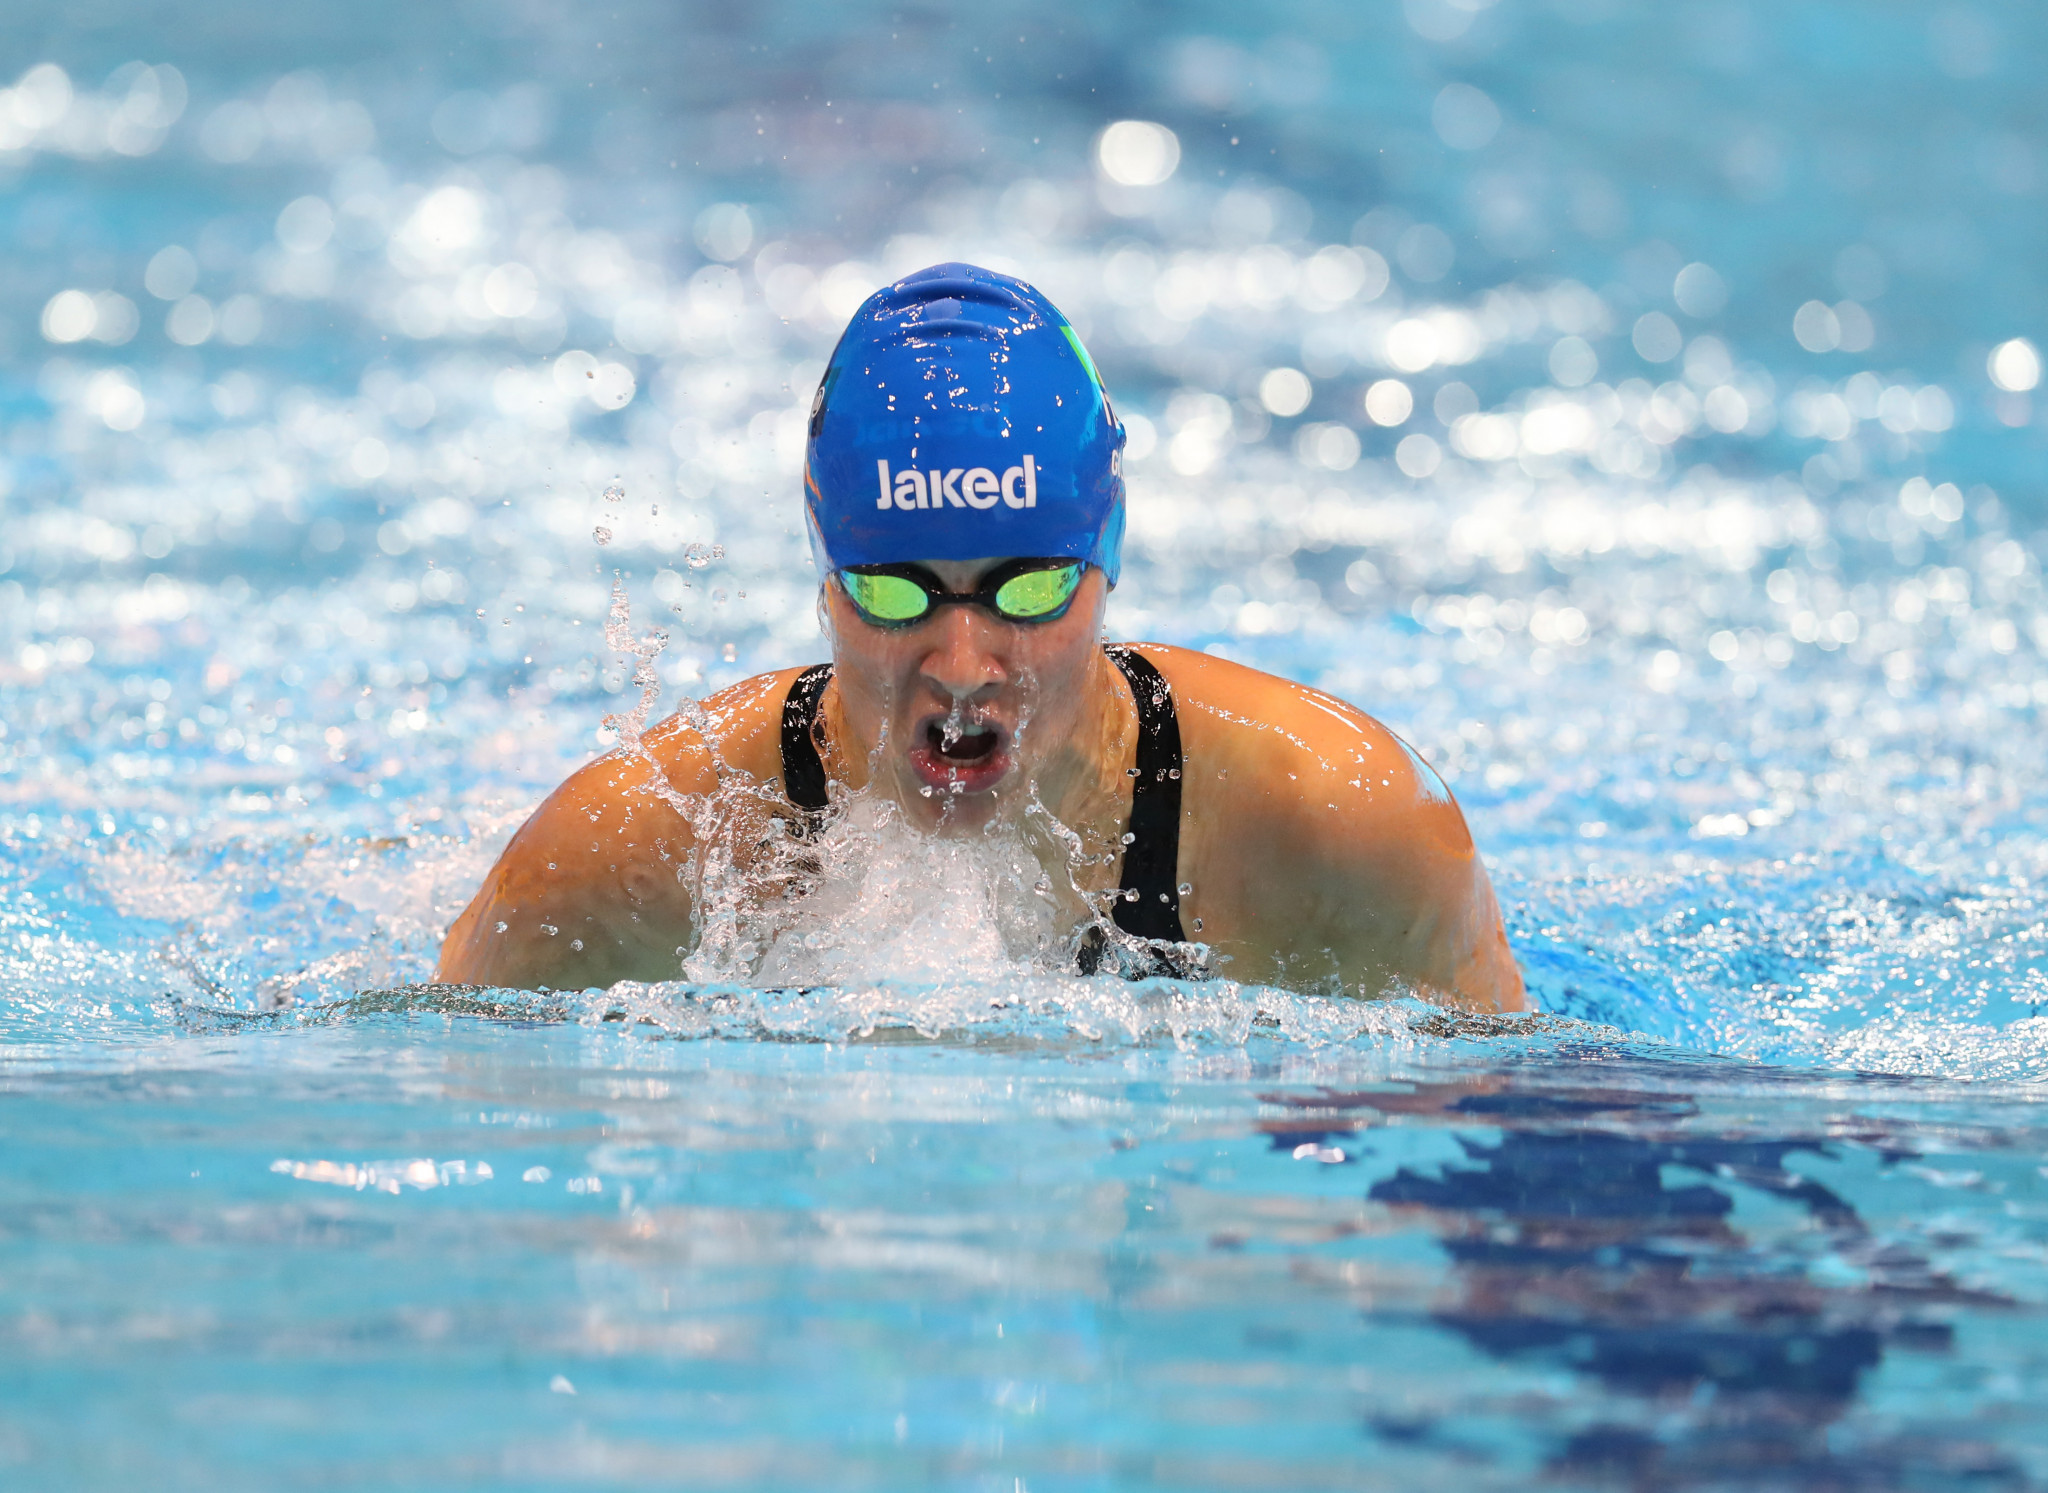 Meister, Gilli and Barlaam all break world records on fourth day of the European Para Swimming Championships